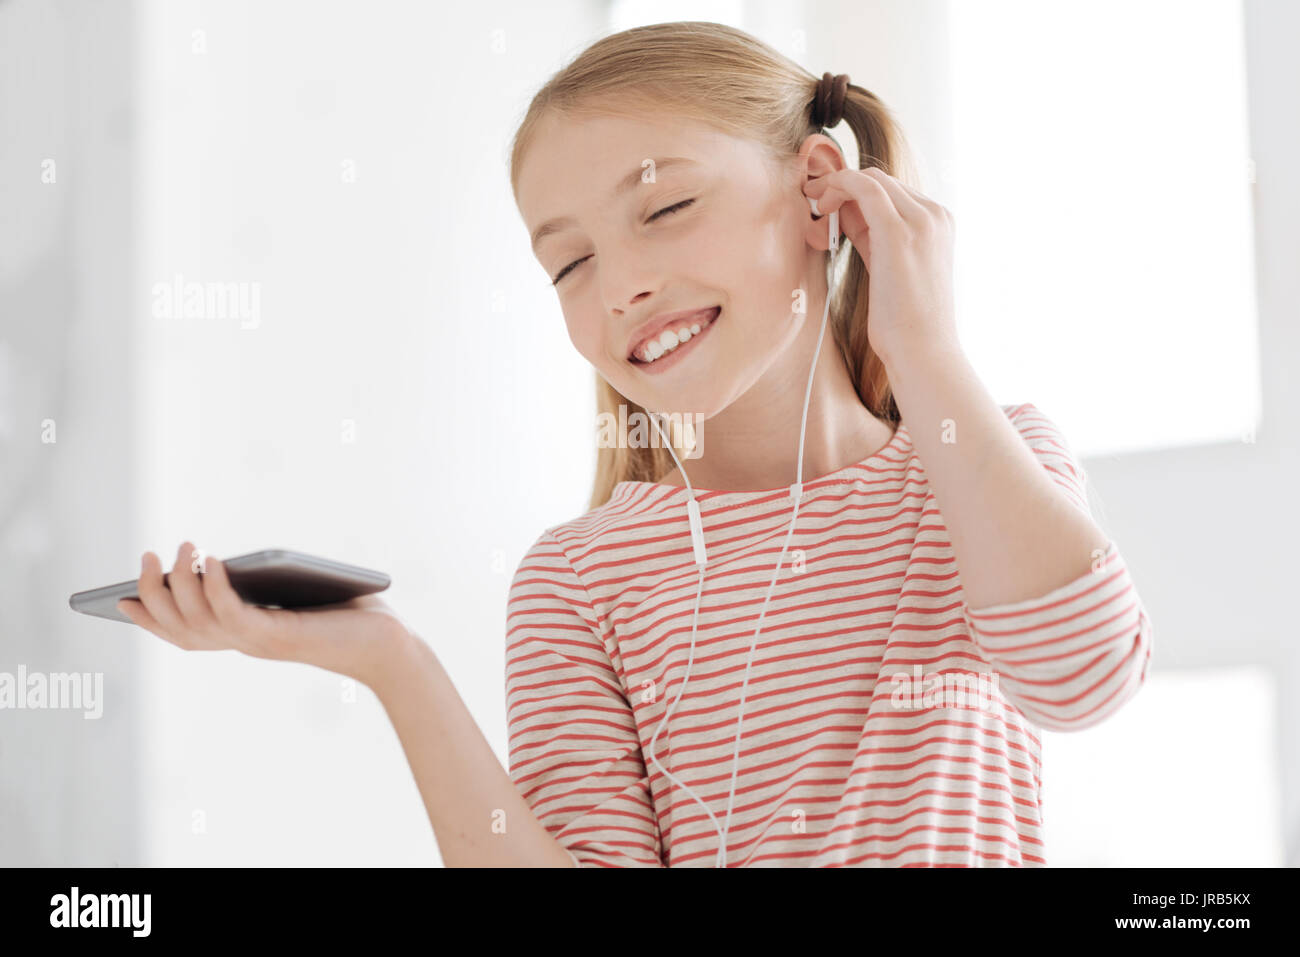 Cute little girl listening to her favorite music album - Stock Image